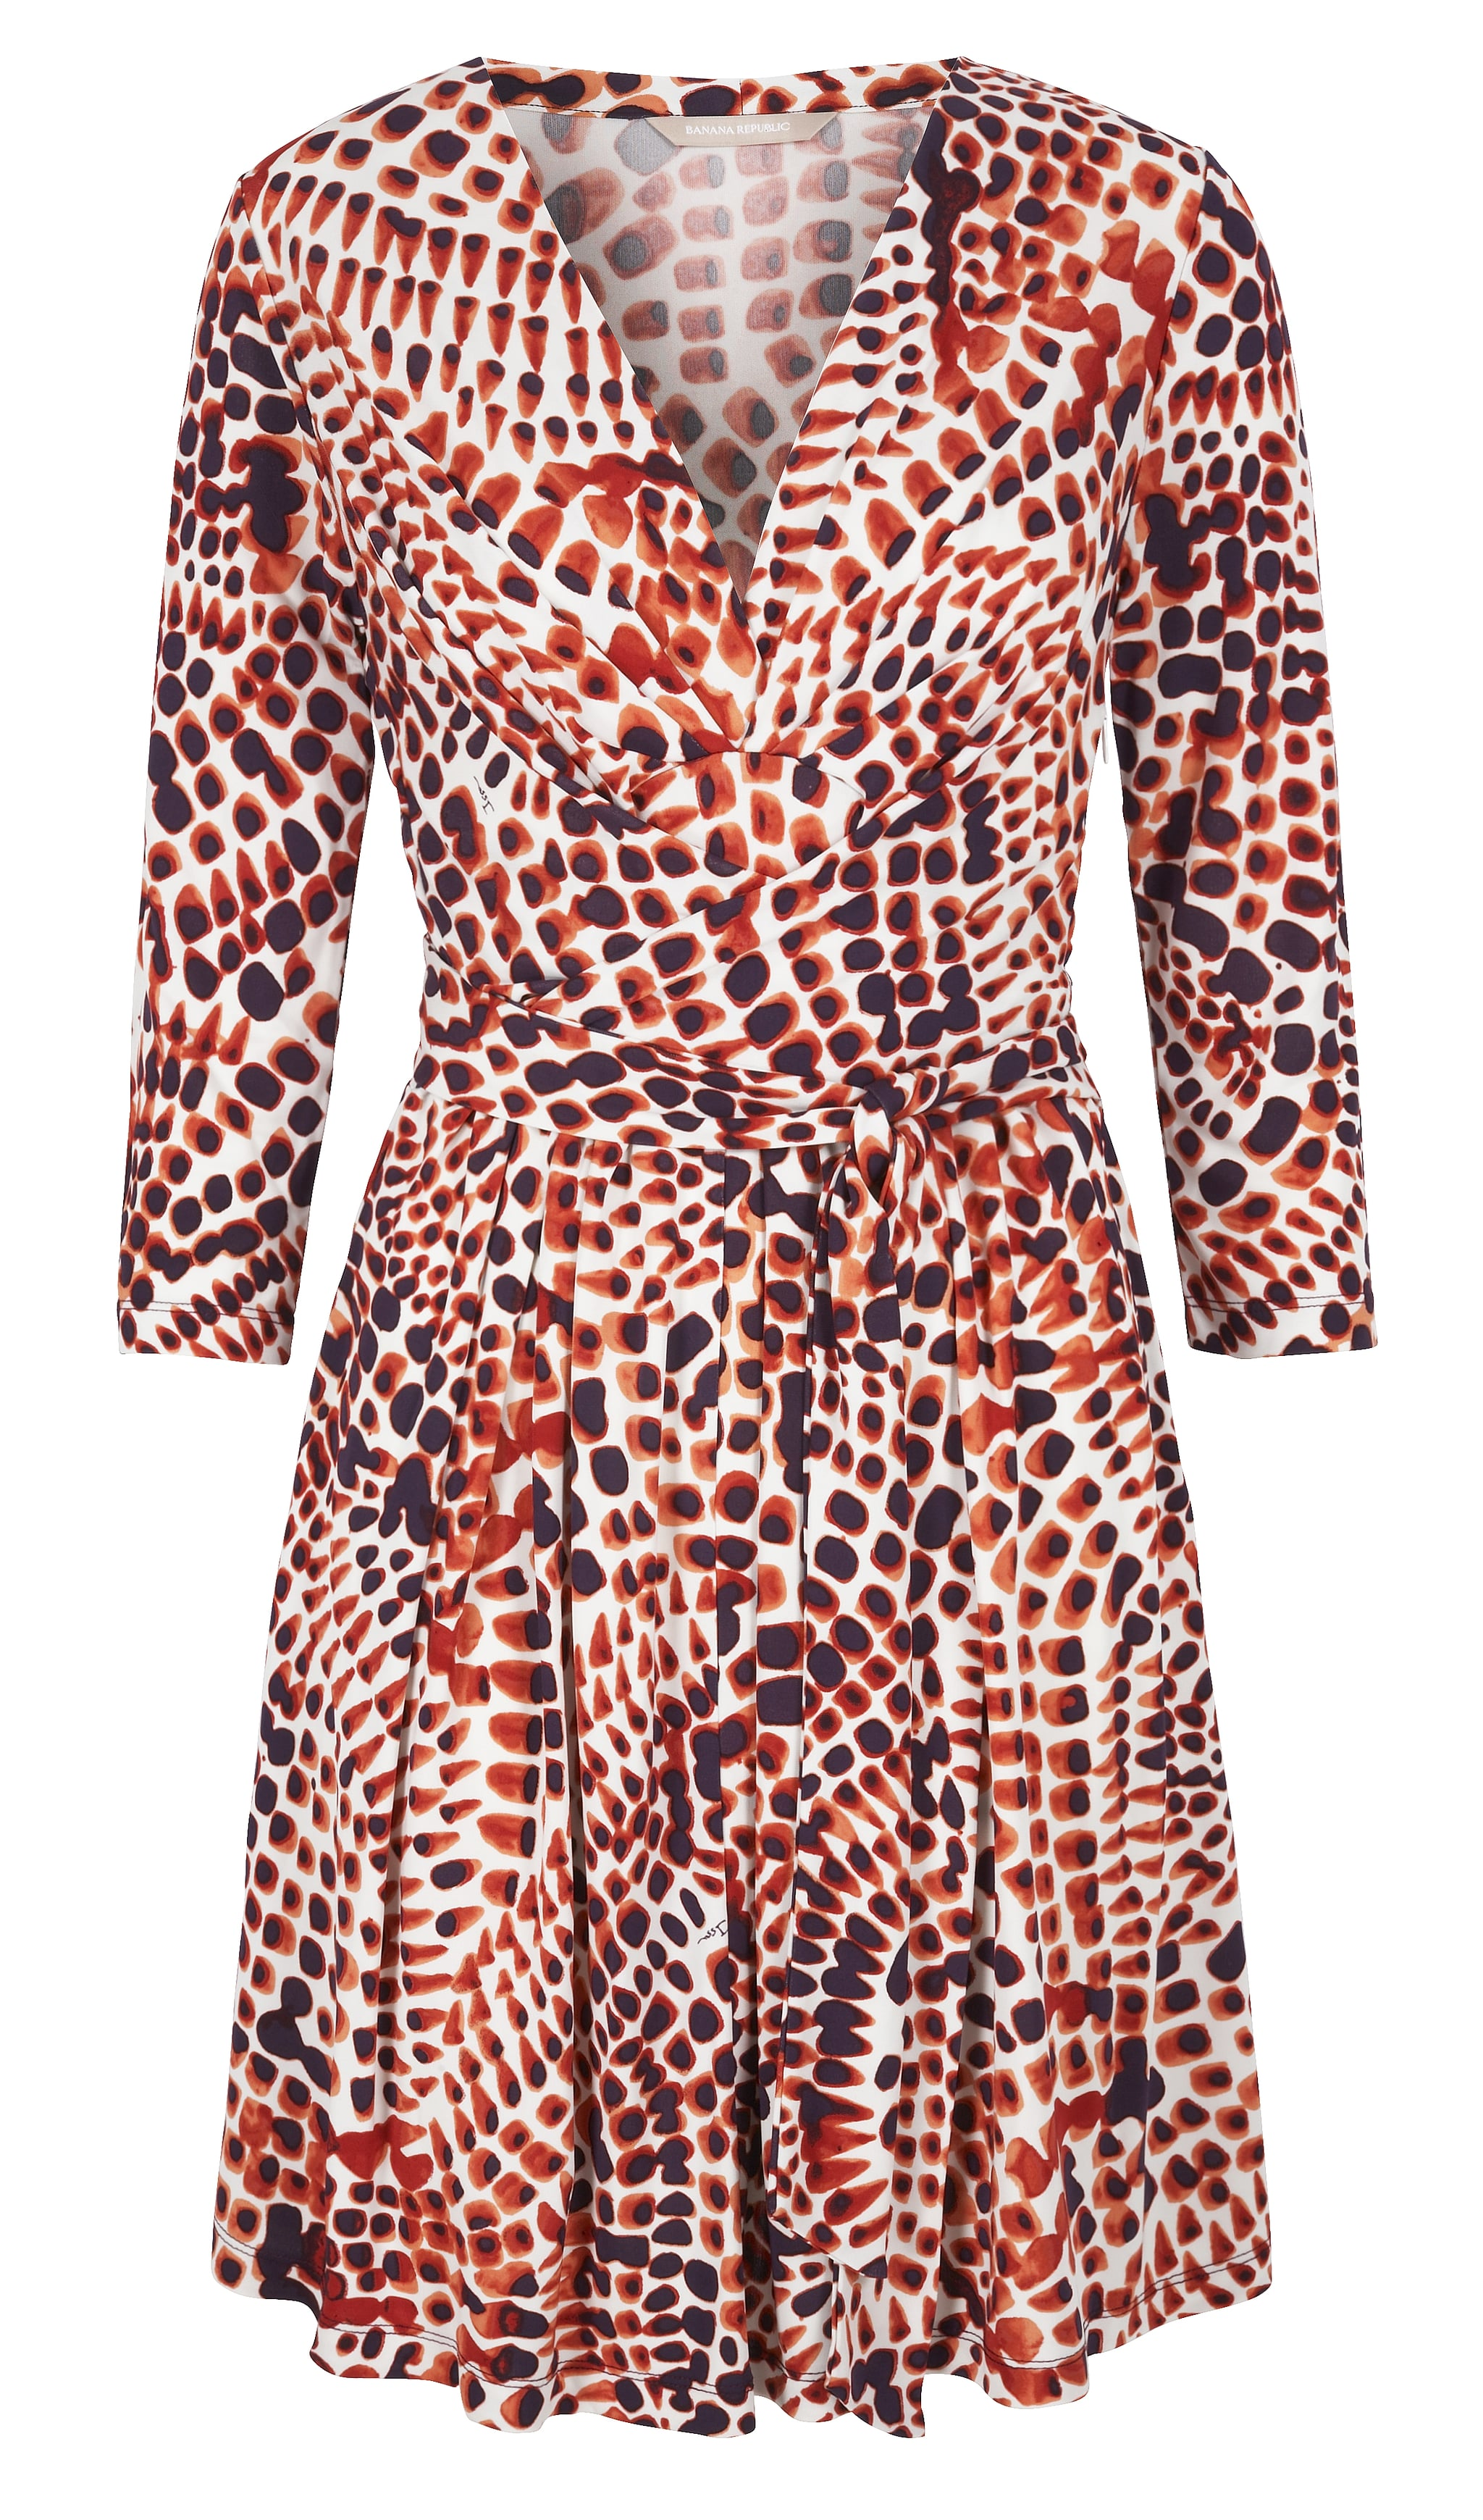 Haven't experienced the magic figure-flattering power of a wrap dress? This spotted red number ($140) is a perfect opportunity to get in on the glory. Photo courtesy of Banana Republic